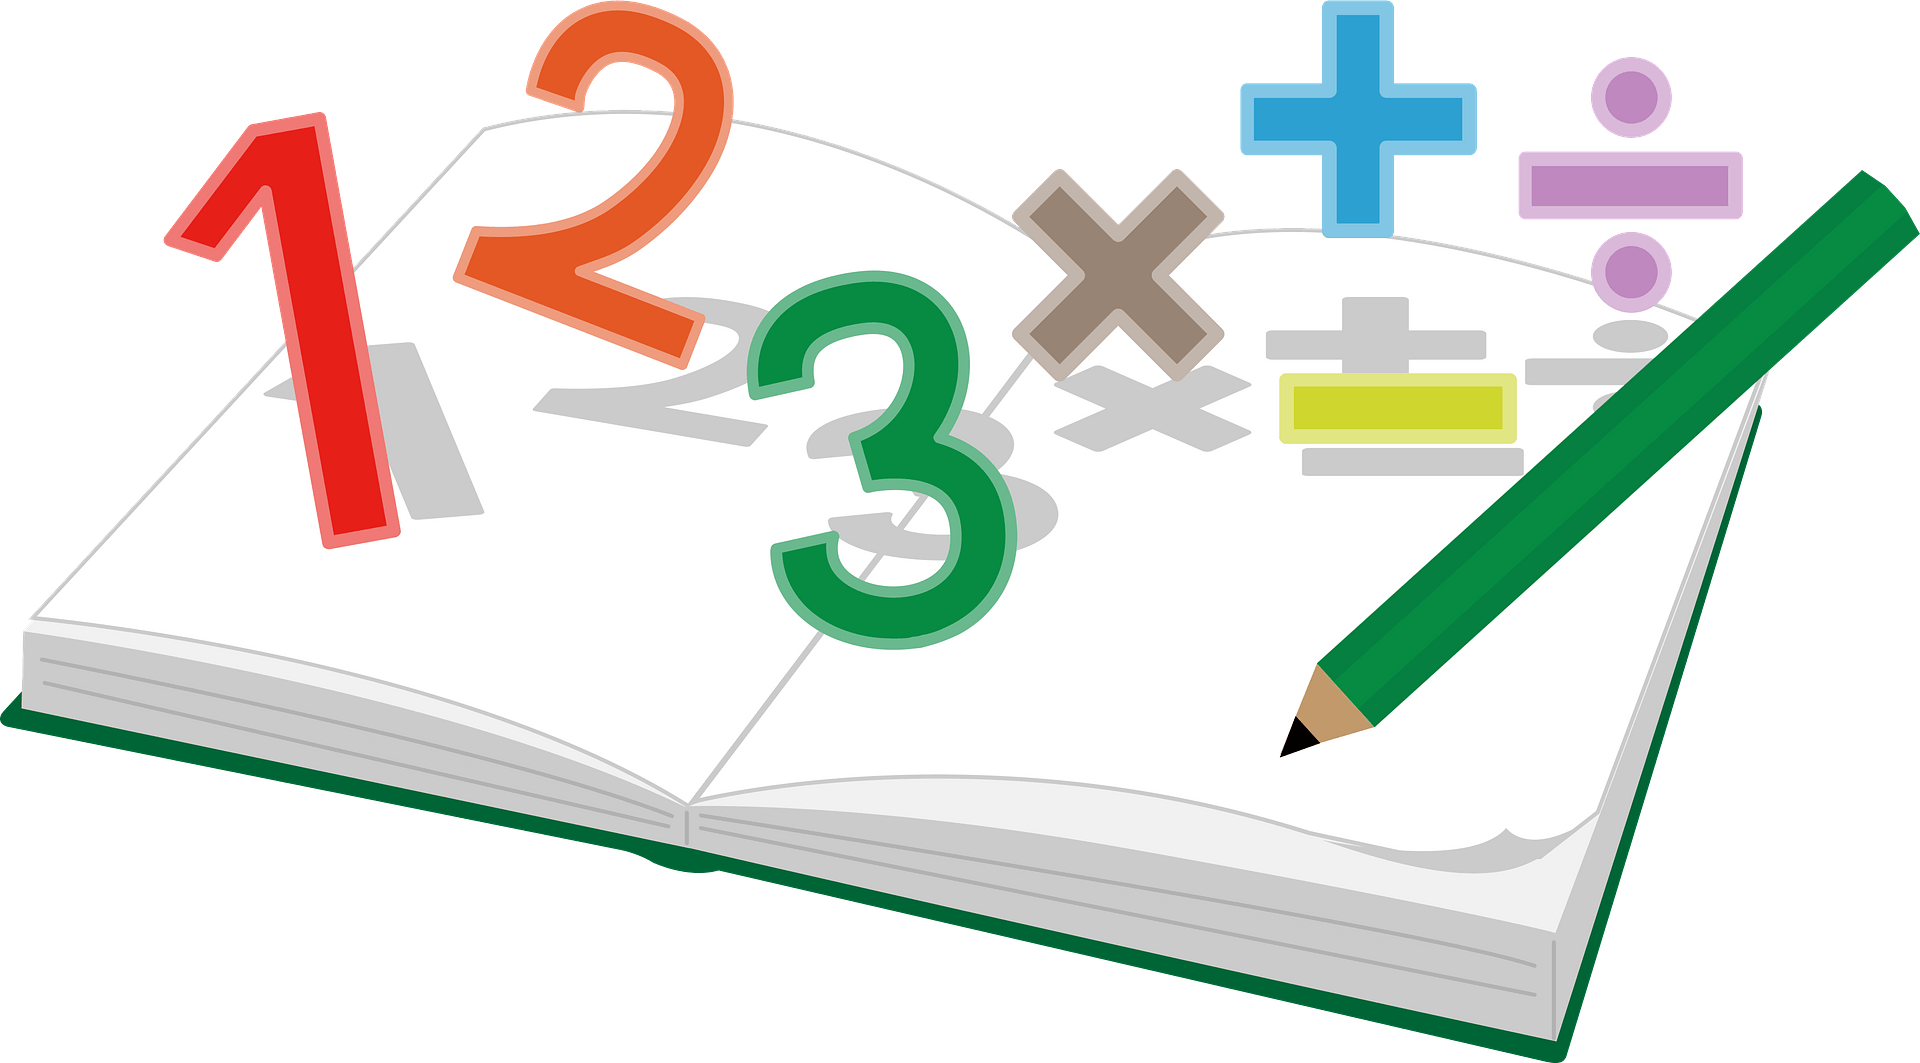 Elementary Mathematics Clipart Free Download Transparent Png Creazilla